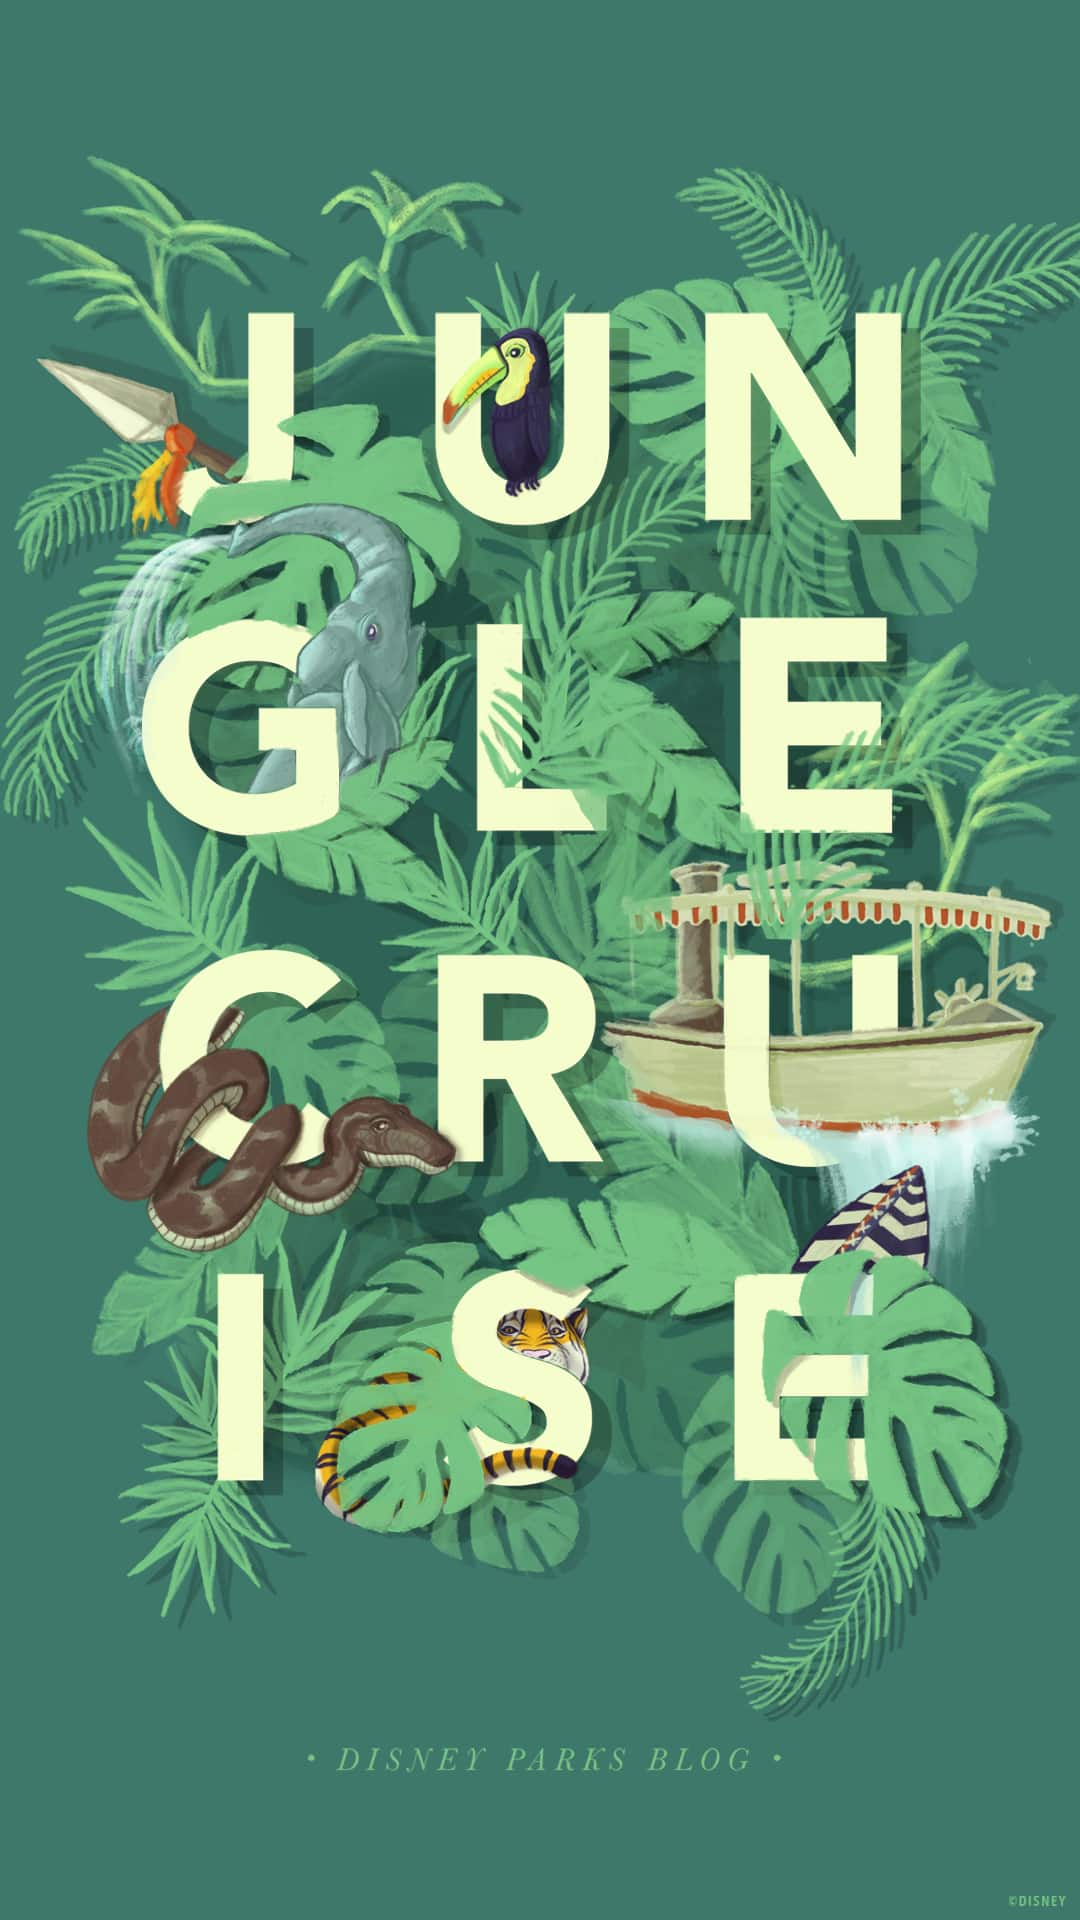 45th Anniversary Wallpaper The Jungle Cruise Mobile Disney Parks Blog